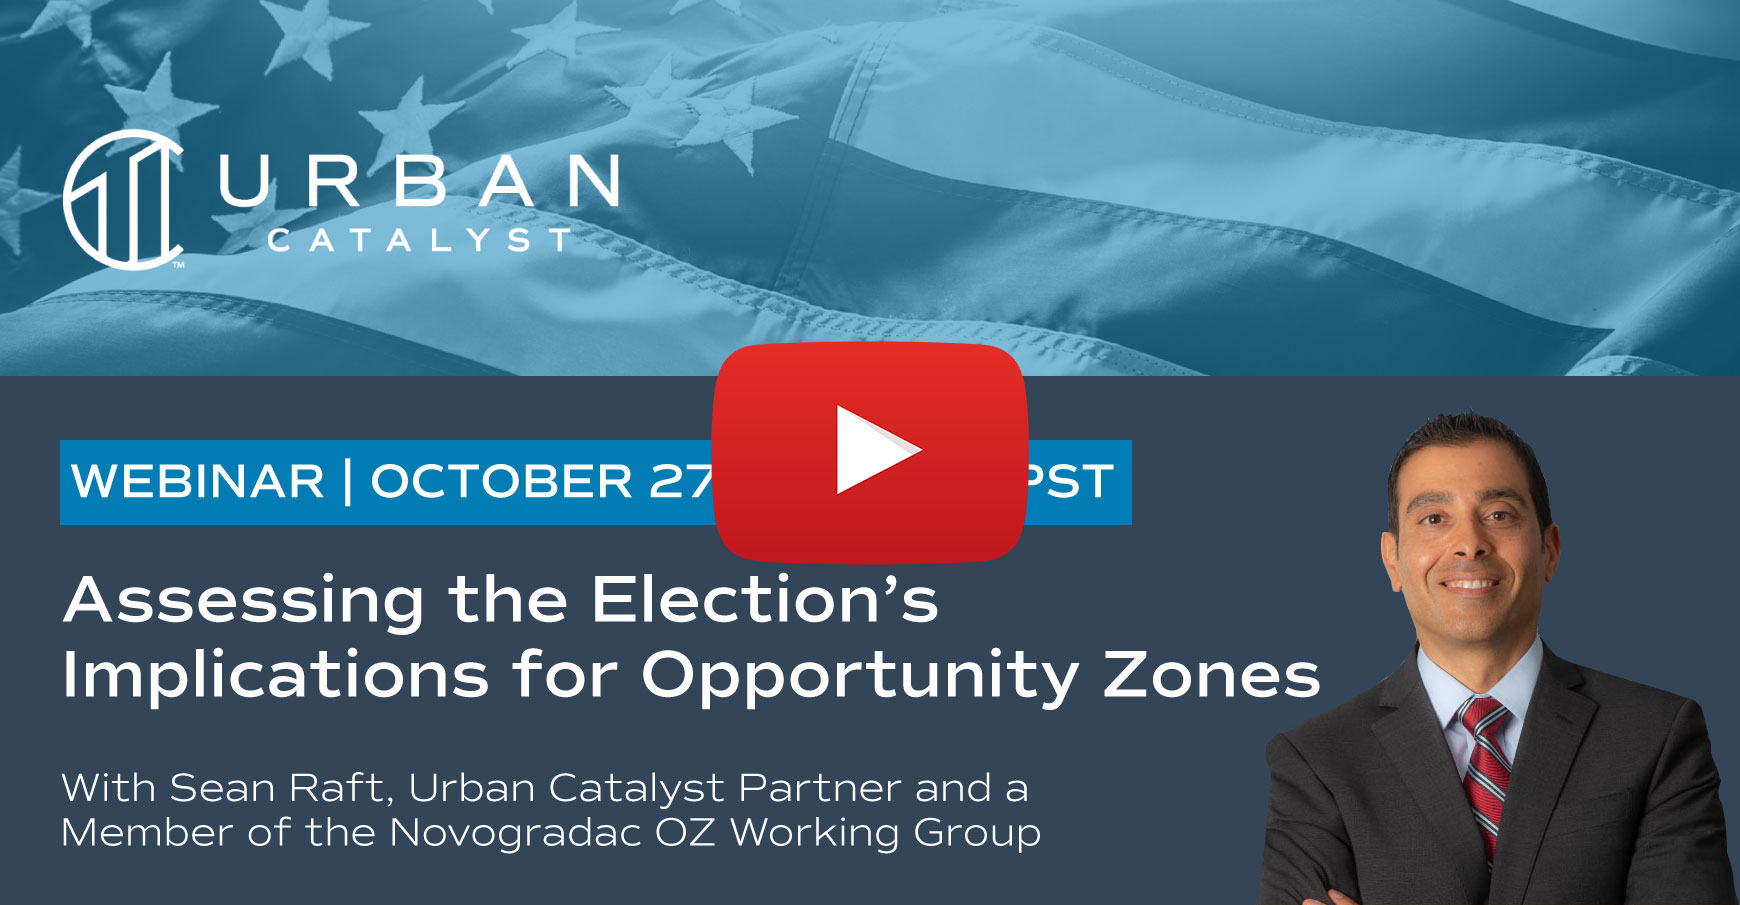 Key Takeaways: Assessing the Election's Implications for Opportunity Zones